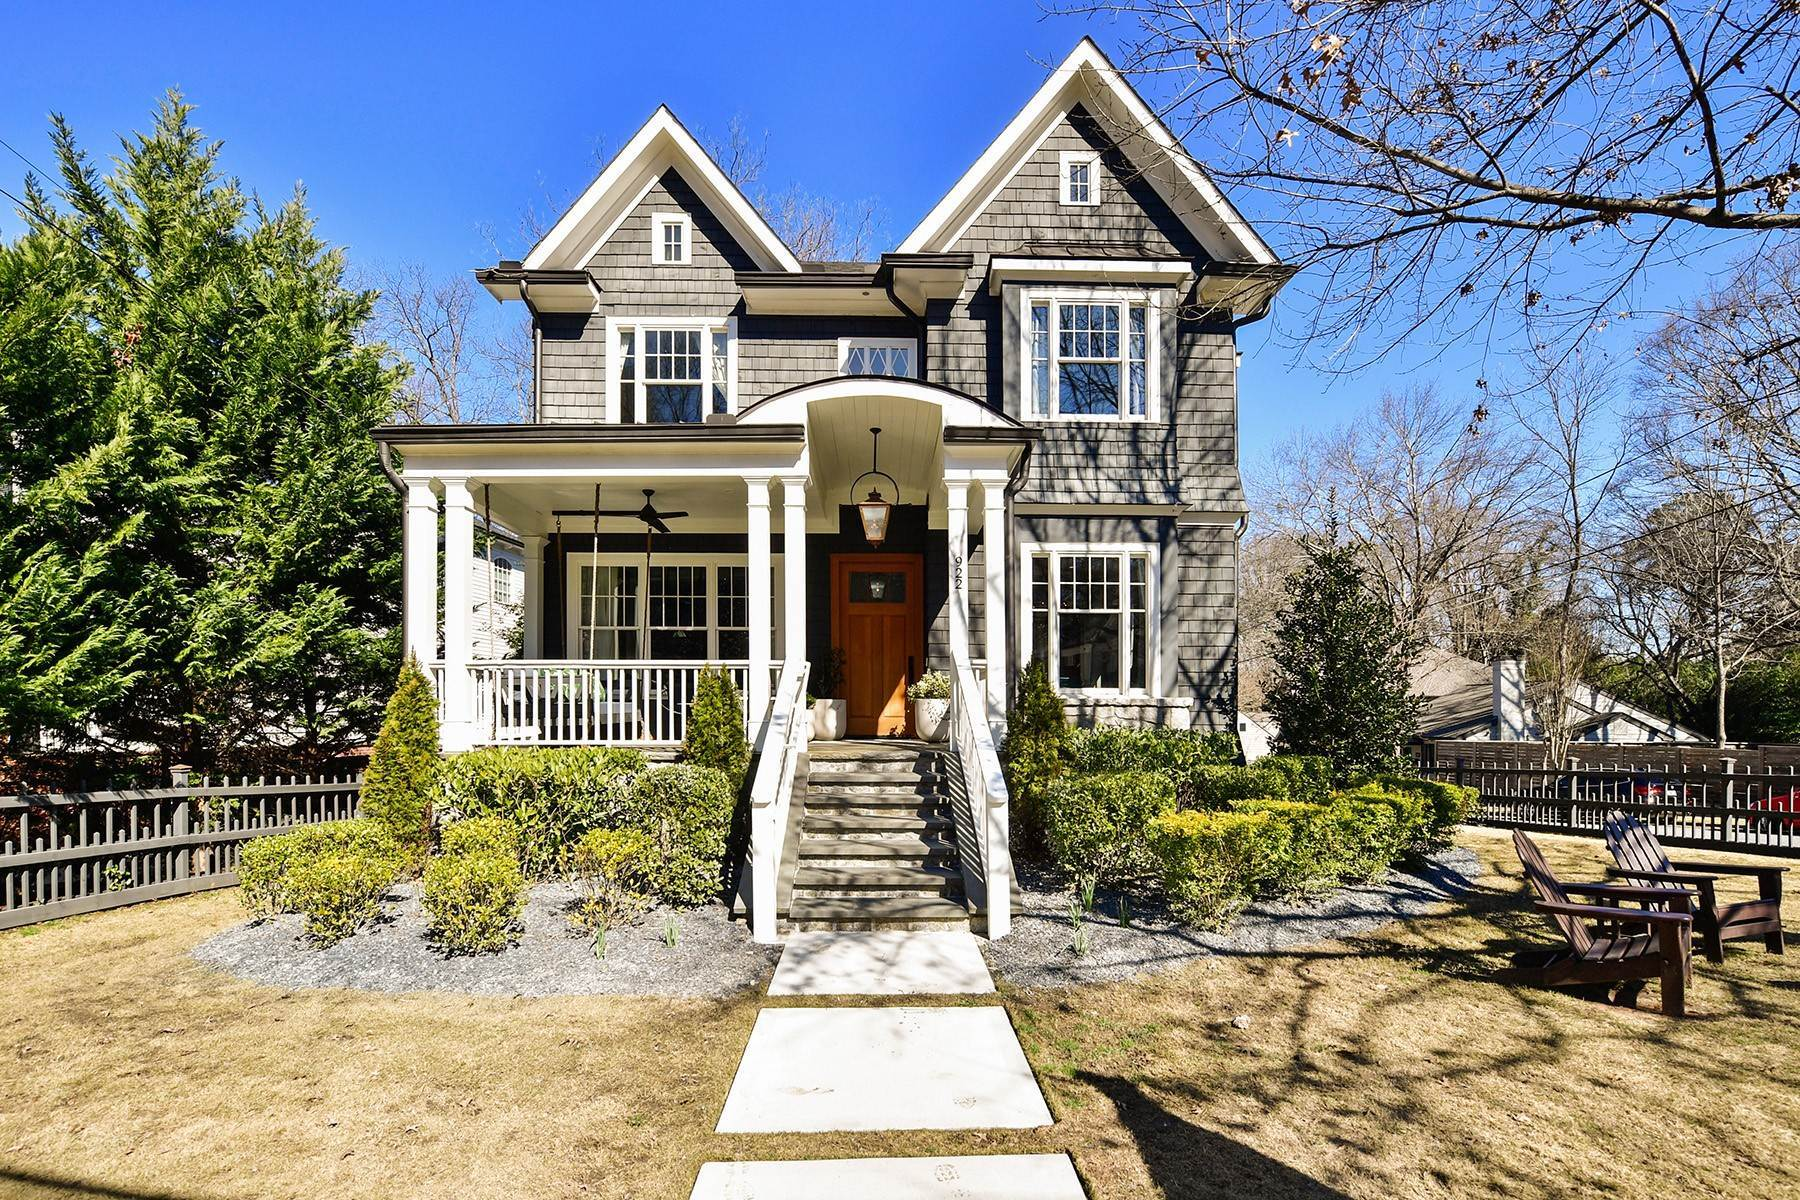 Single Family Homes for Sale at An Exceptional Home In An Ideal Morningside Location 922 Amsterdam Avenue Atlanta, Georgia 30306 United States